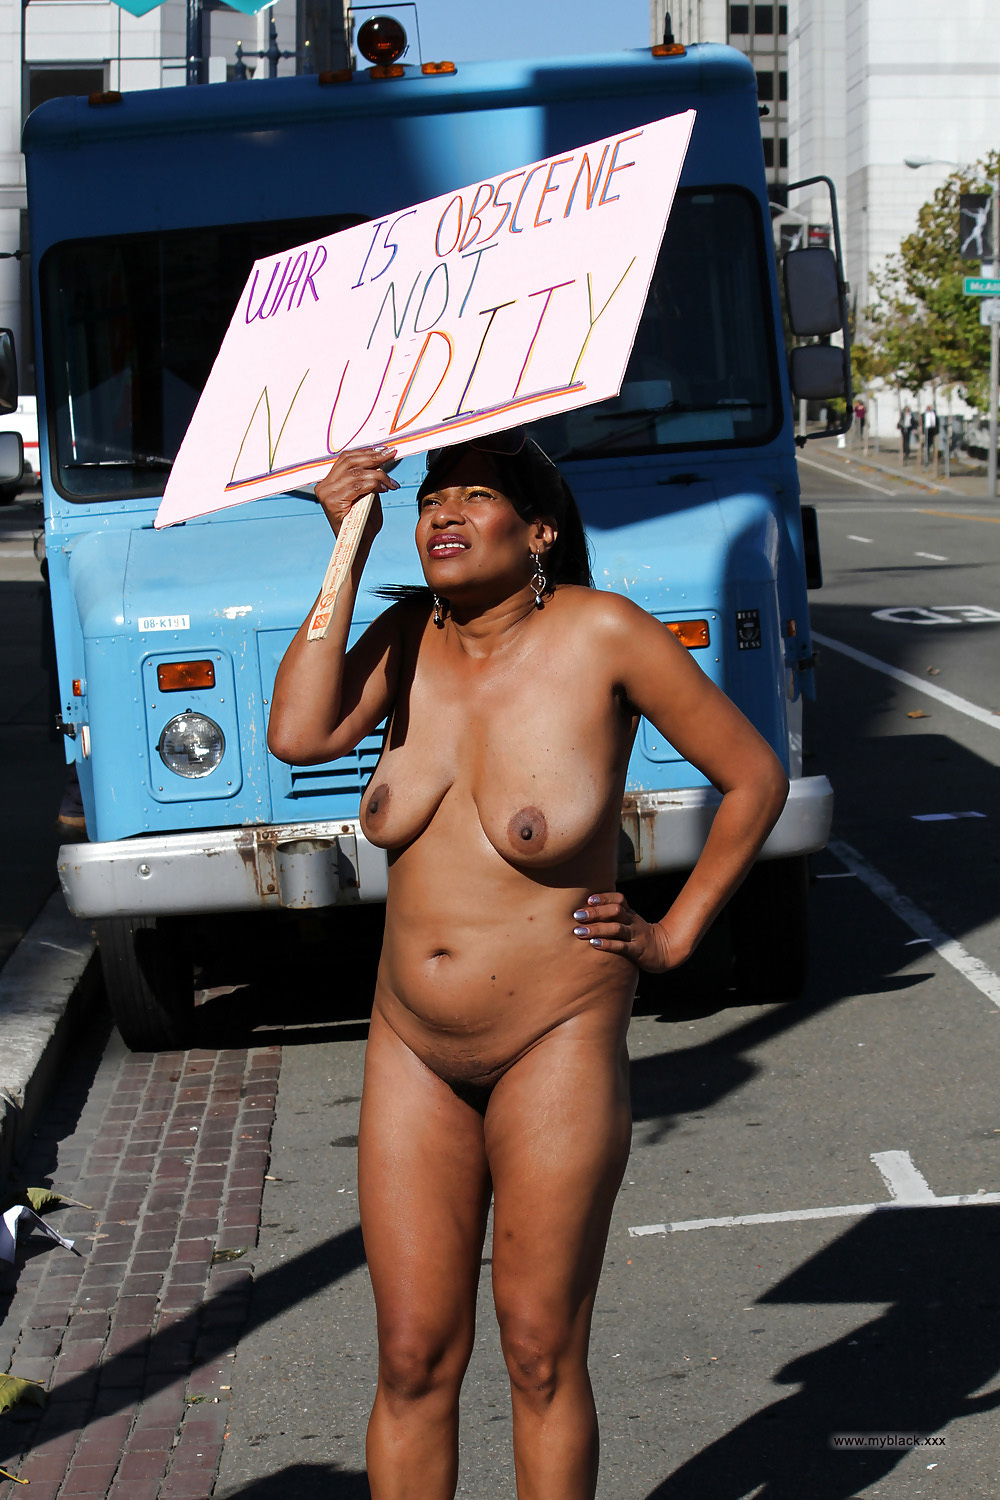 More nude women protest tell more